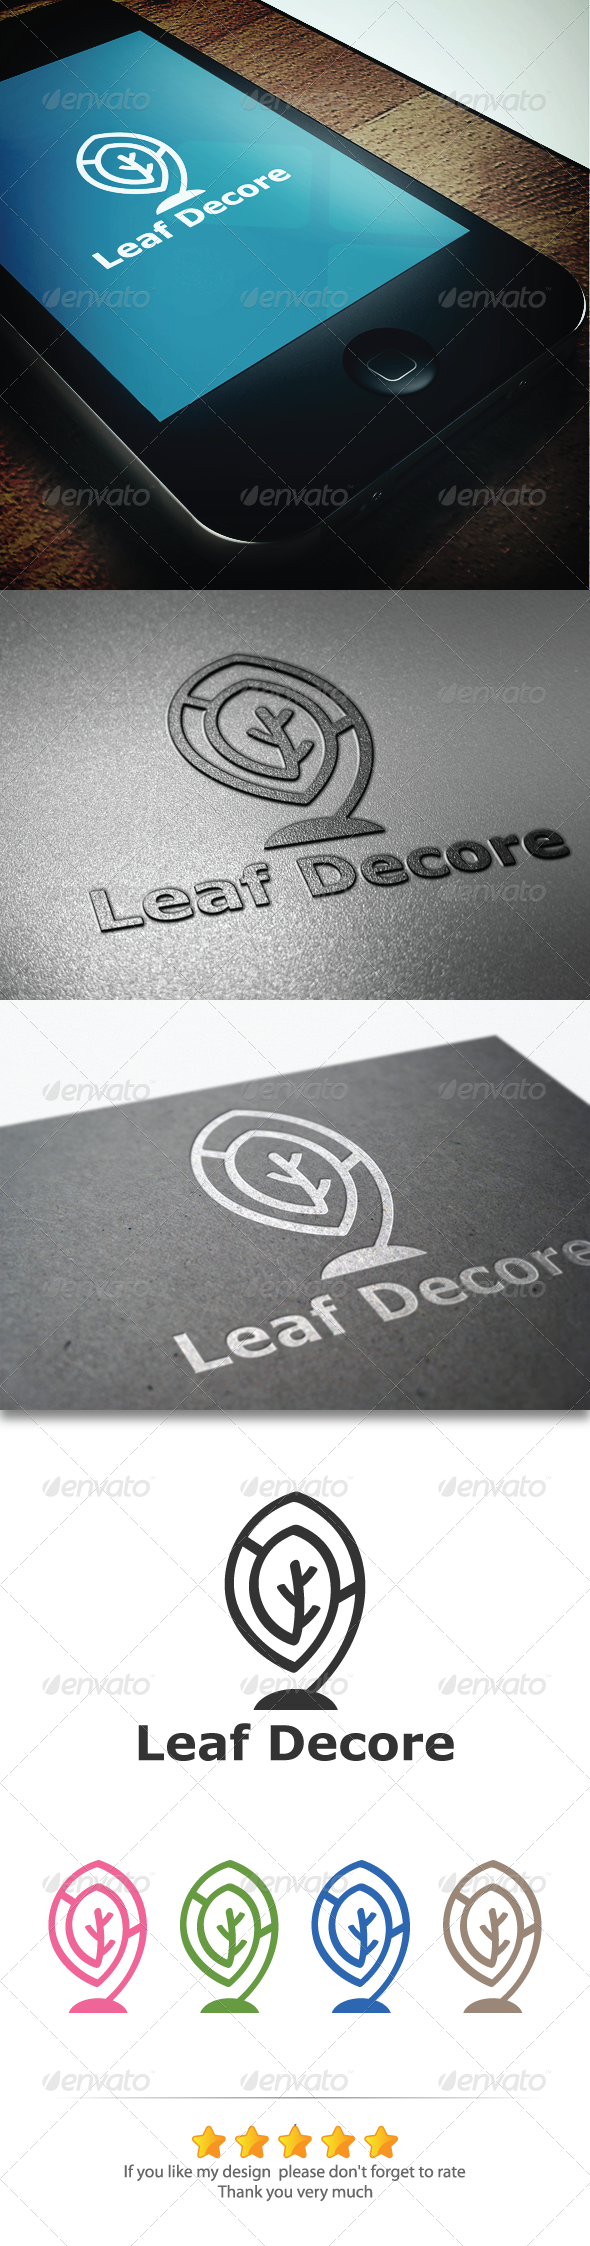 GraphicRiver Leaf Decore 5750072